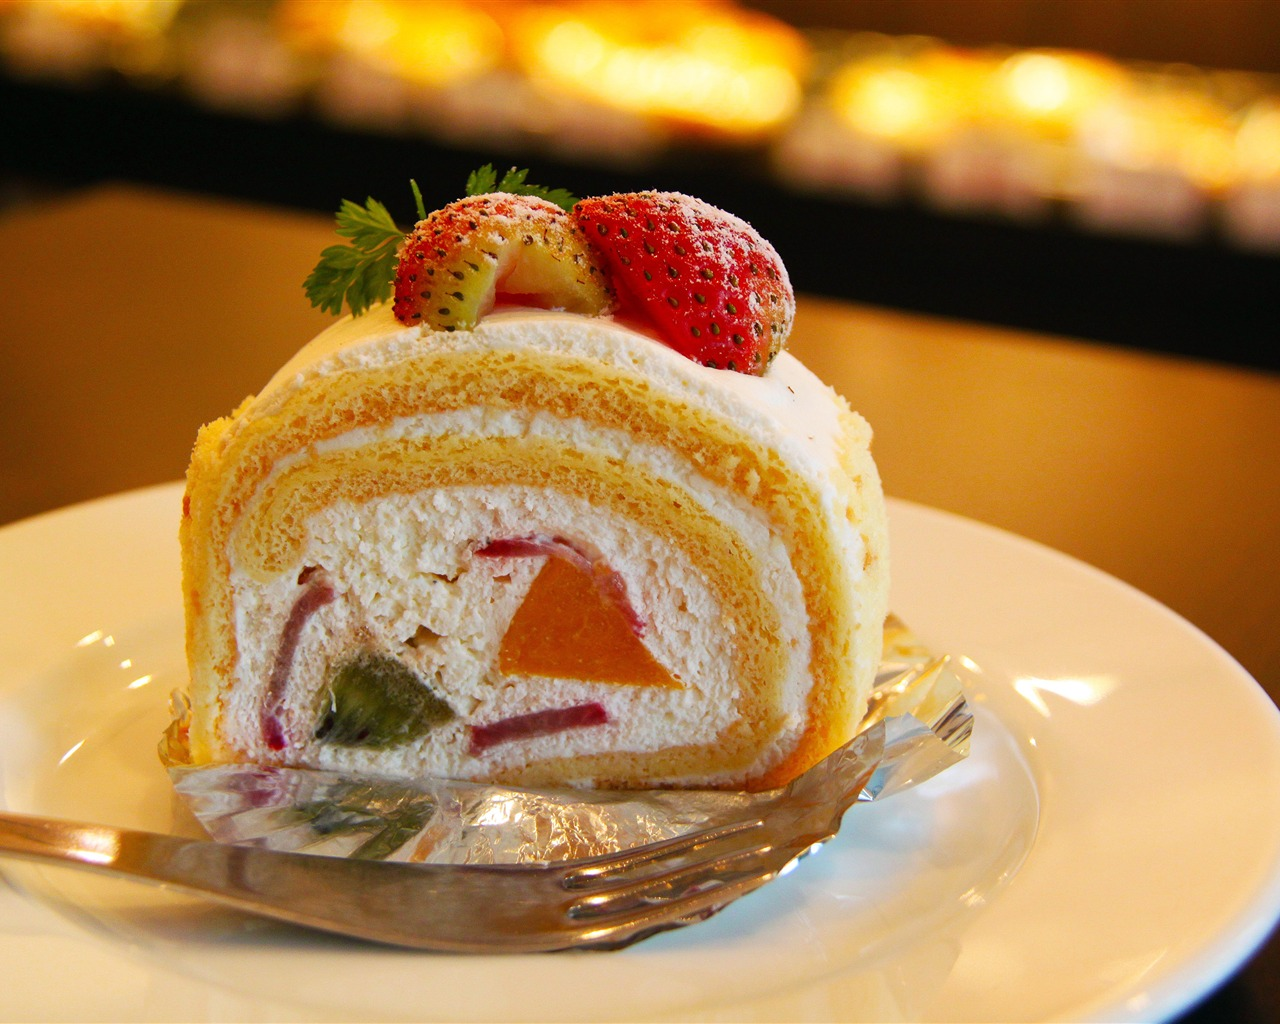 Sweet fruit strawberry cake close-up - 1280x1024 wallpaper download